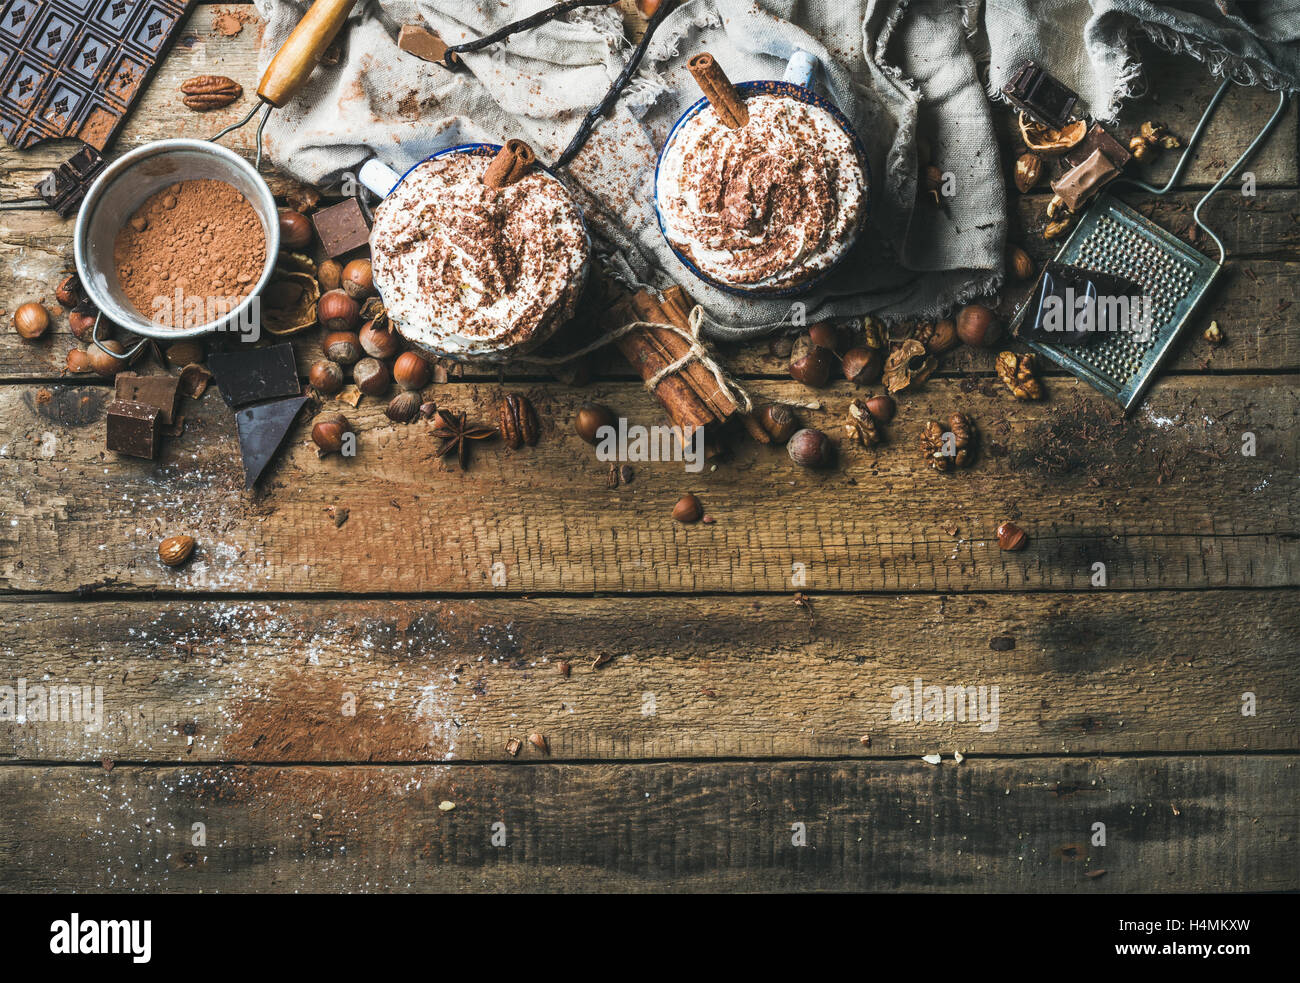 Hot chocolate with whipped cream, nuts, spices and cocoa powder - Stock Image